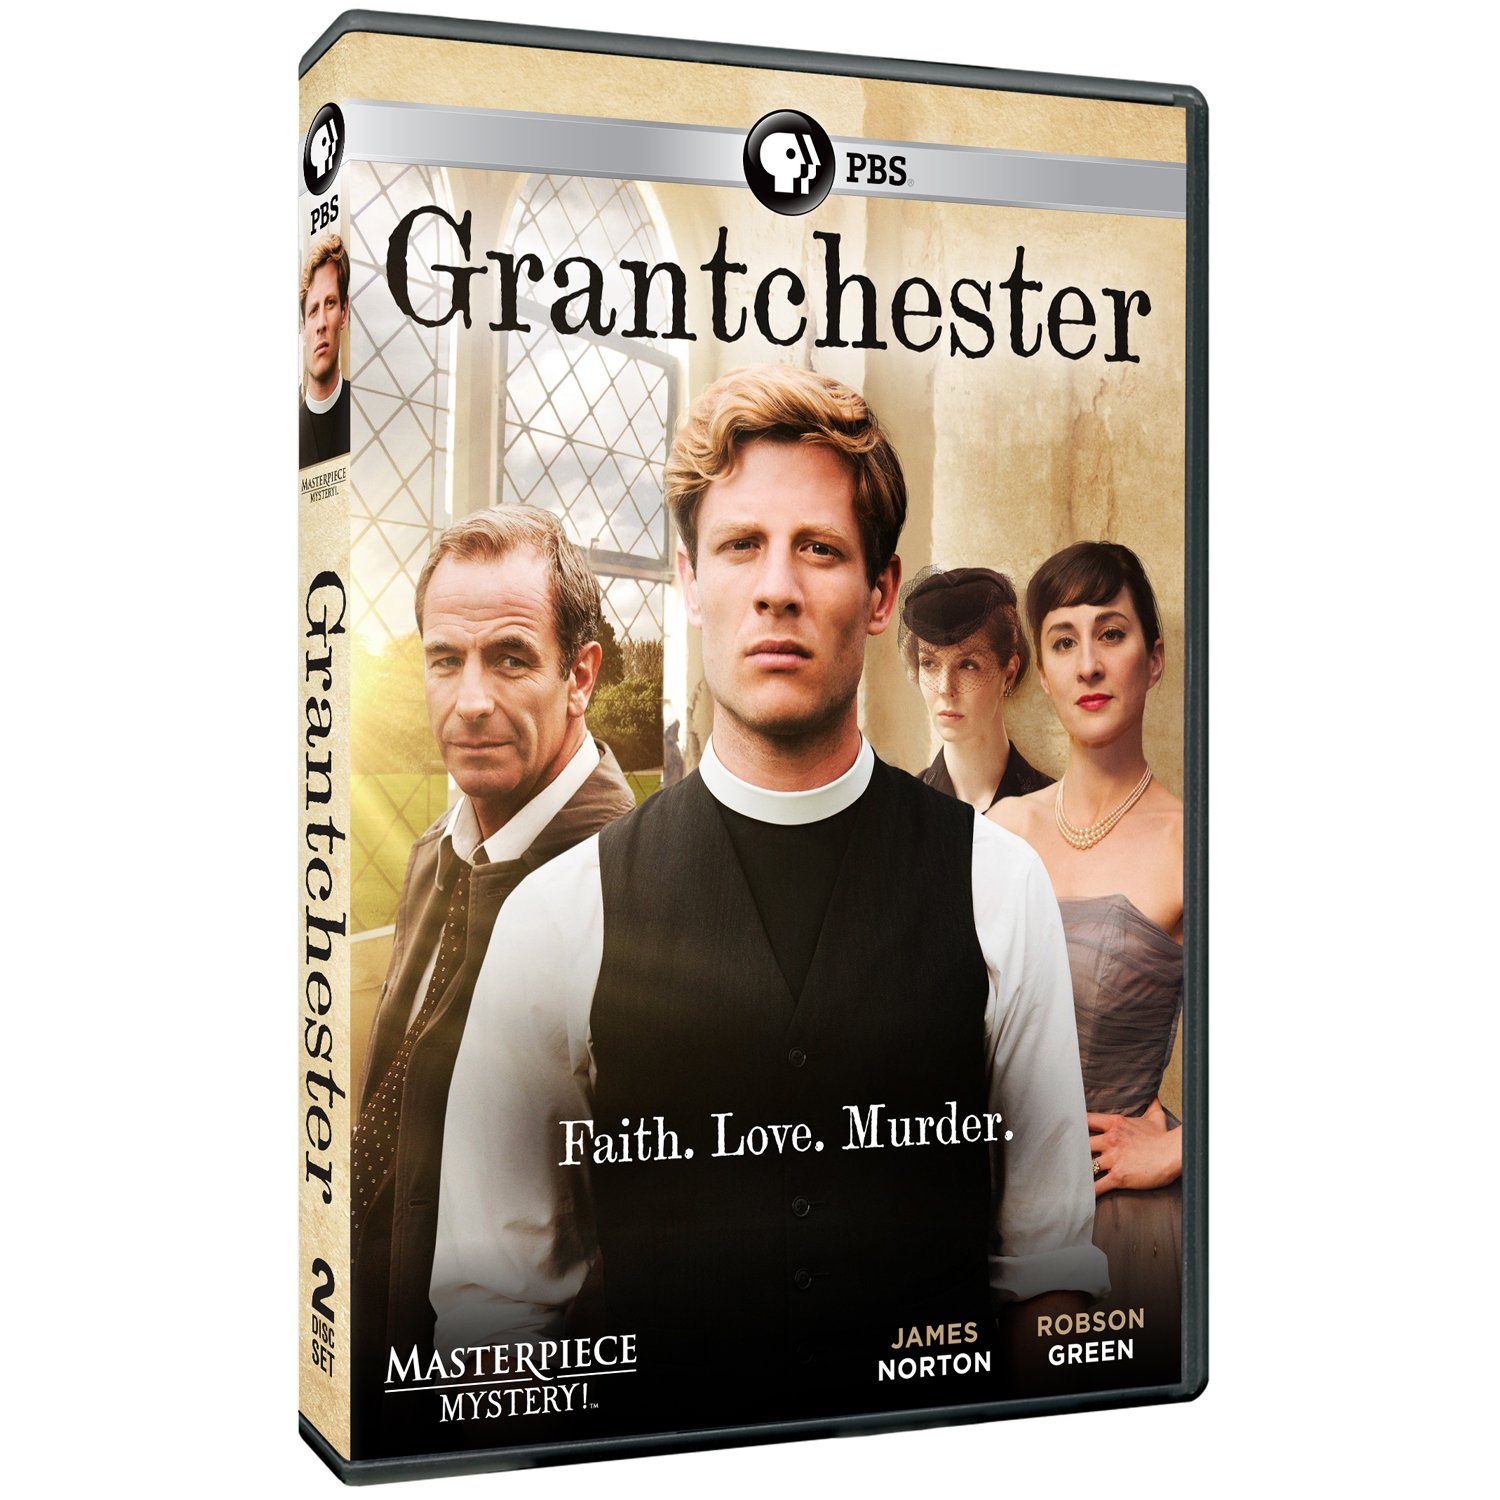 Amazon.com: Masterpiece Mystery: Grantchester: Robson Green James ...